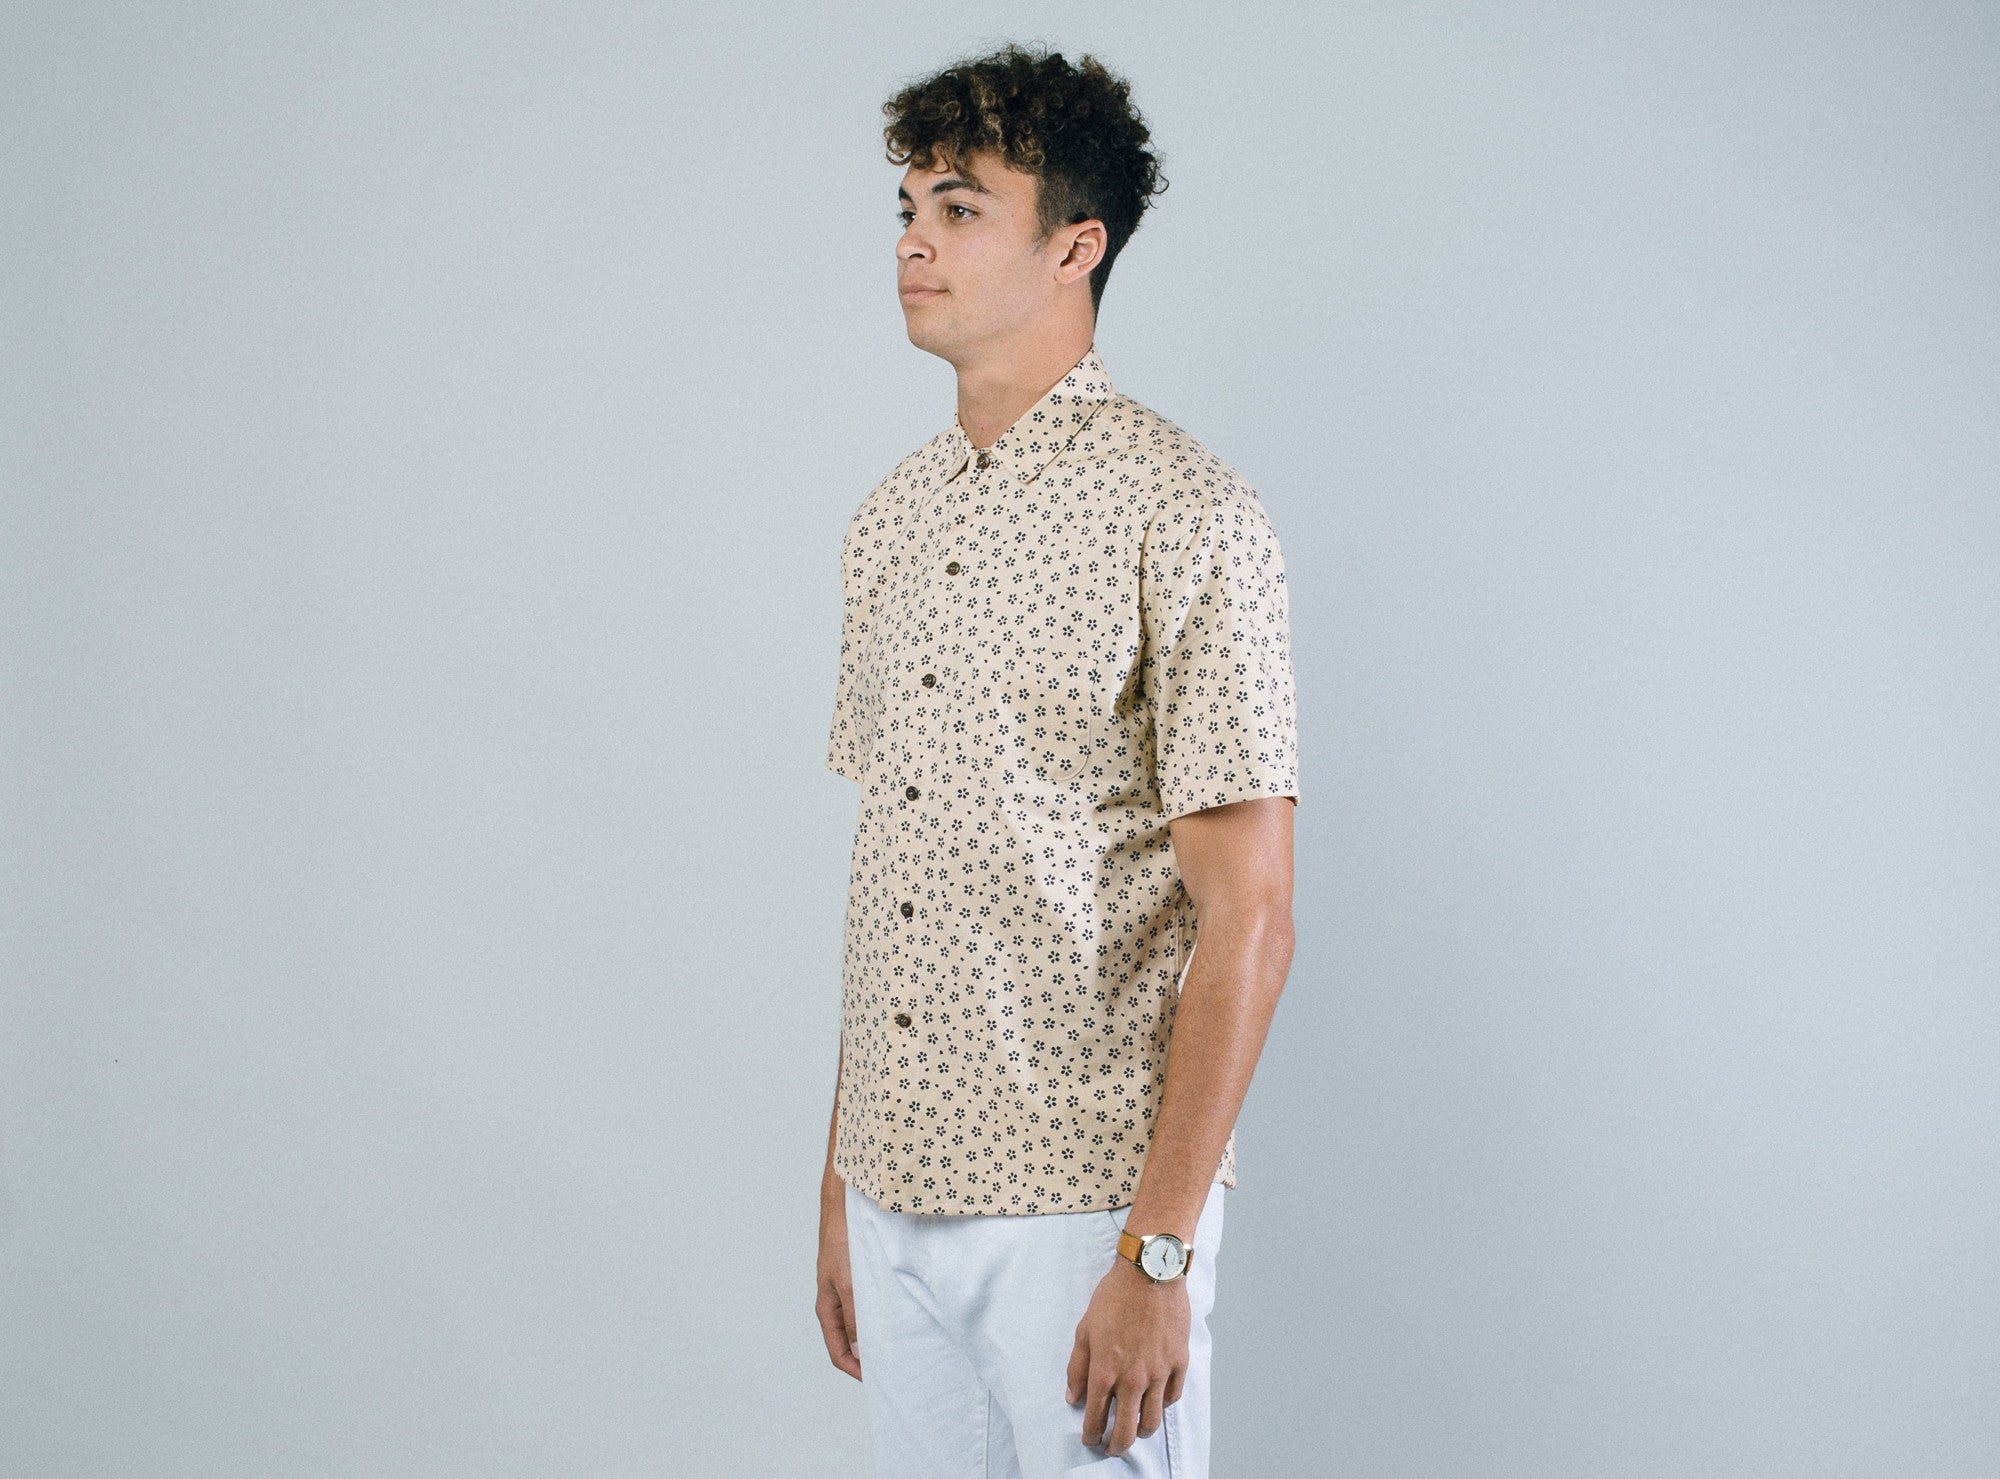 Aloha Beach Club - Pearl City Natural Short Sleeve Aloha Shirt - Aloha Beach Club